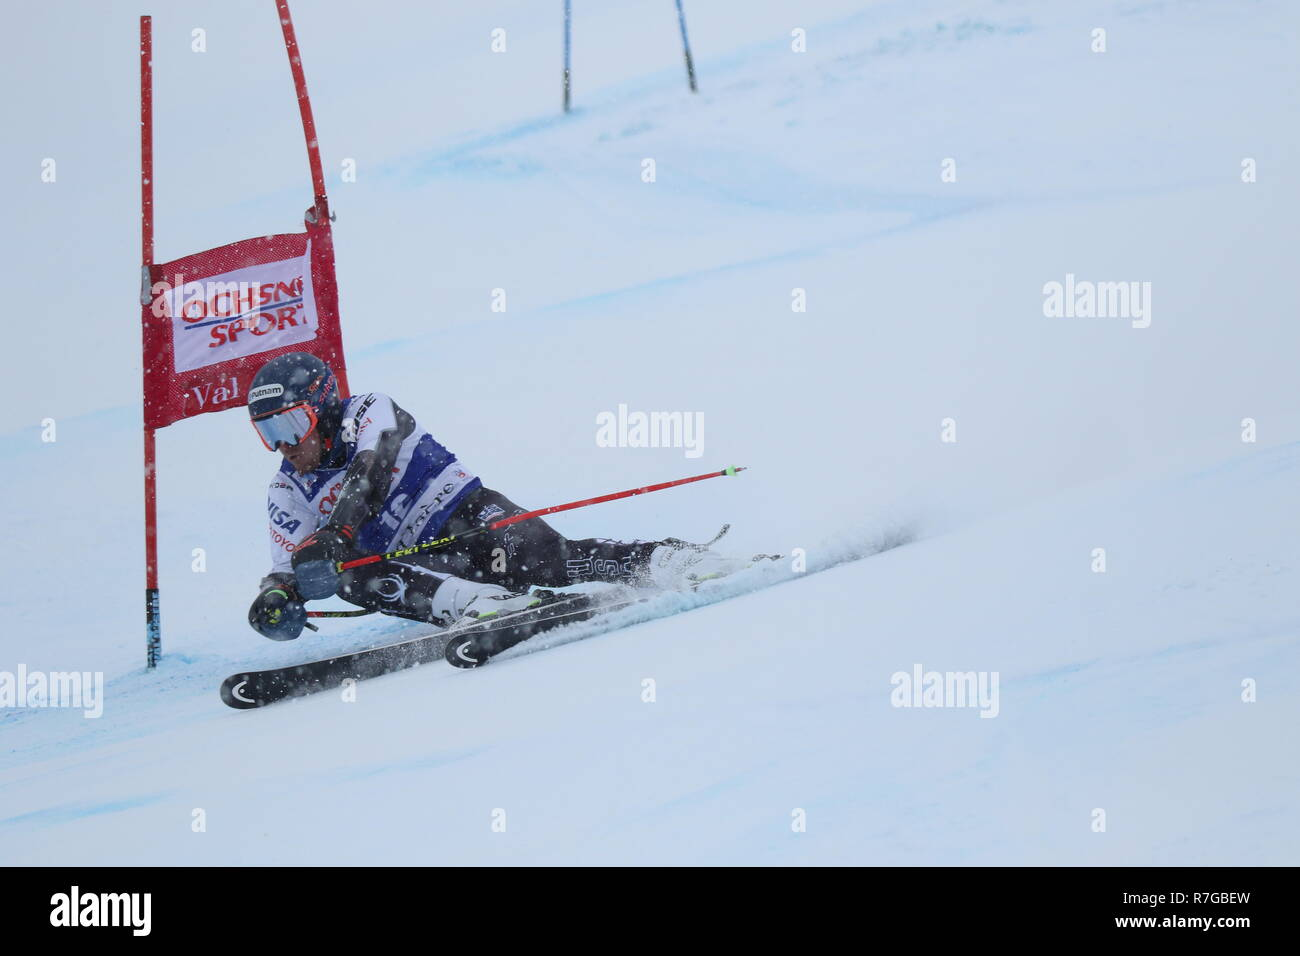 08 December 2018 Val d'Isère, France. Ted Ligety Alpine Skier from USA competing in men's Giant Slalom Audi FIS Alpine Ski World Cup 2019 Stock Photo